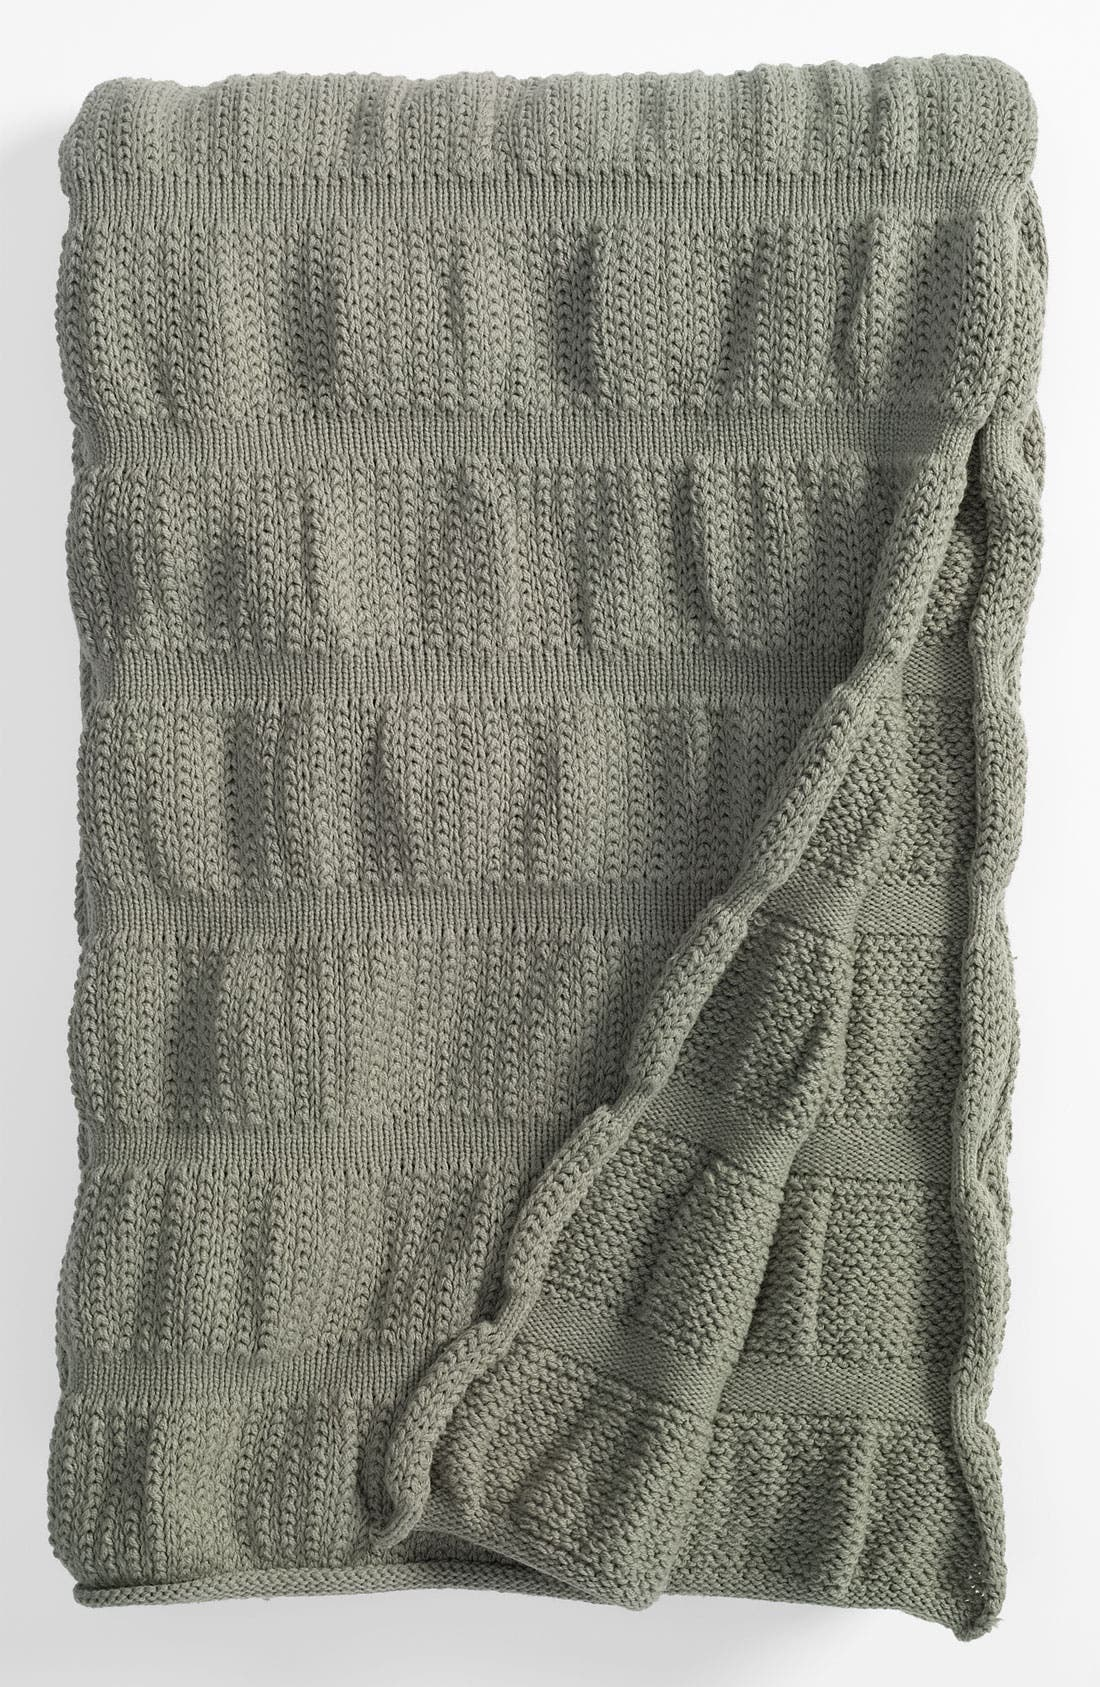 Alternate Image 1 Selected - Nordstrom at Home 'Ripple Knit' Throw